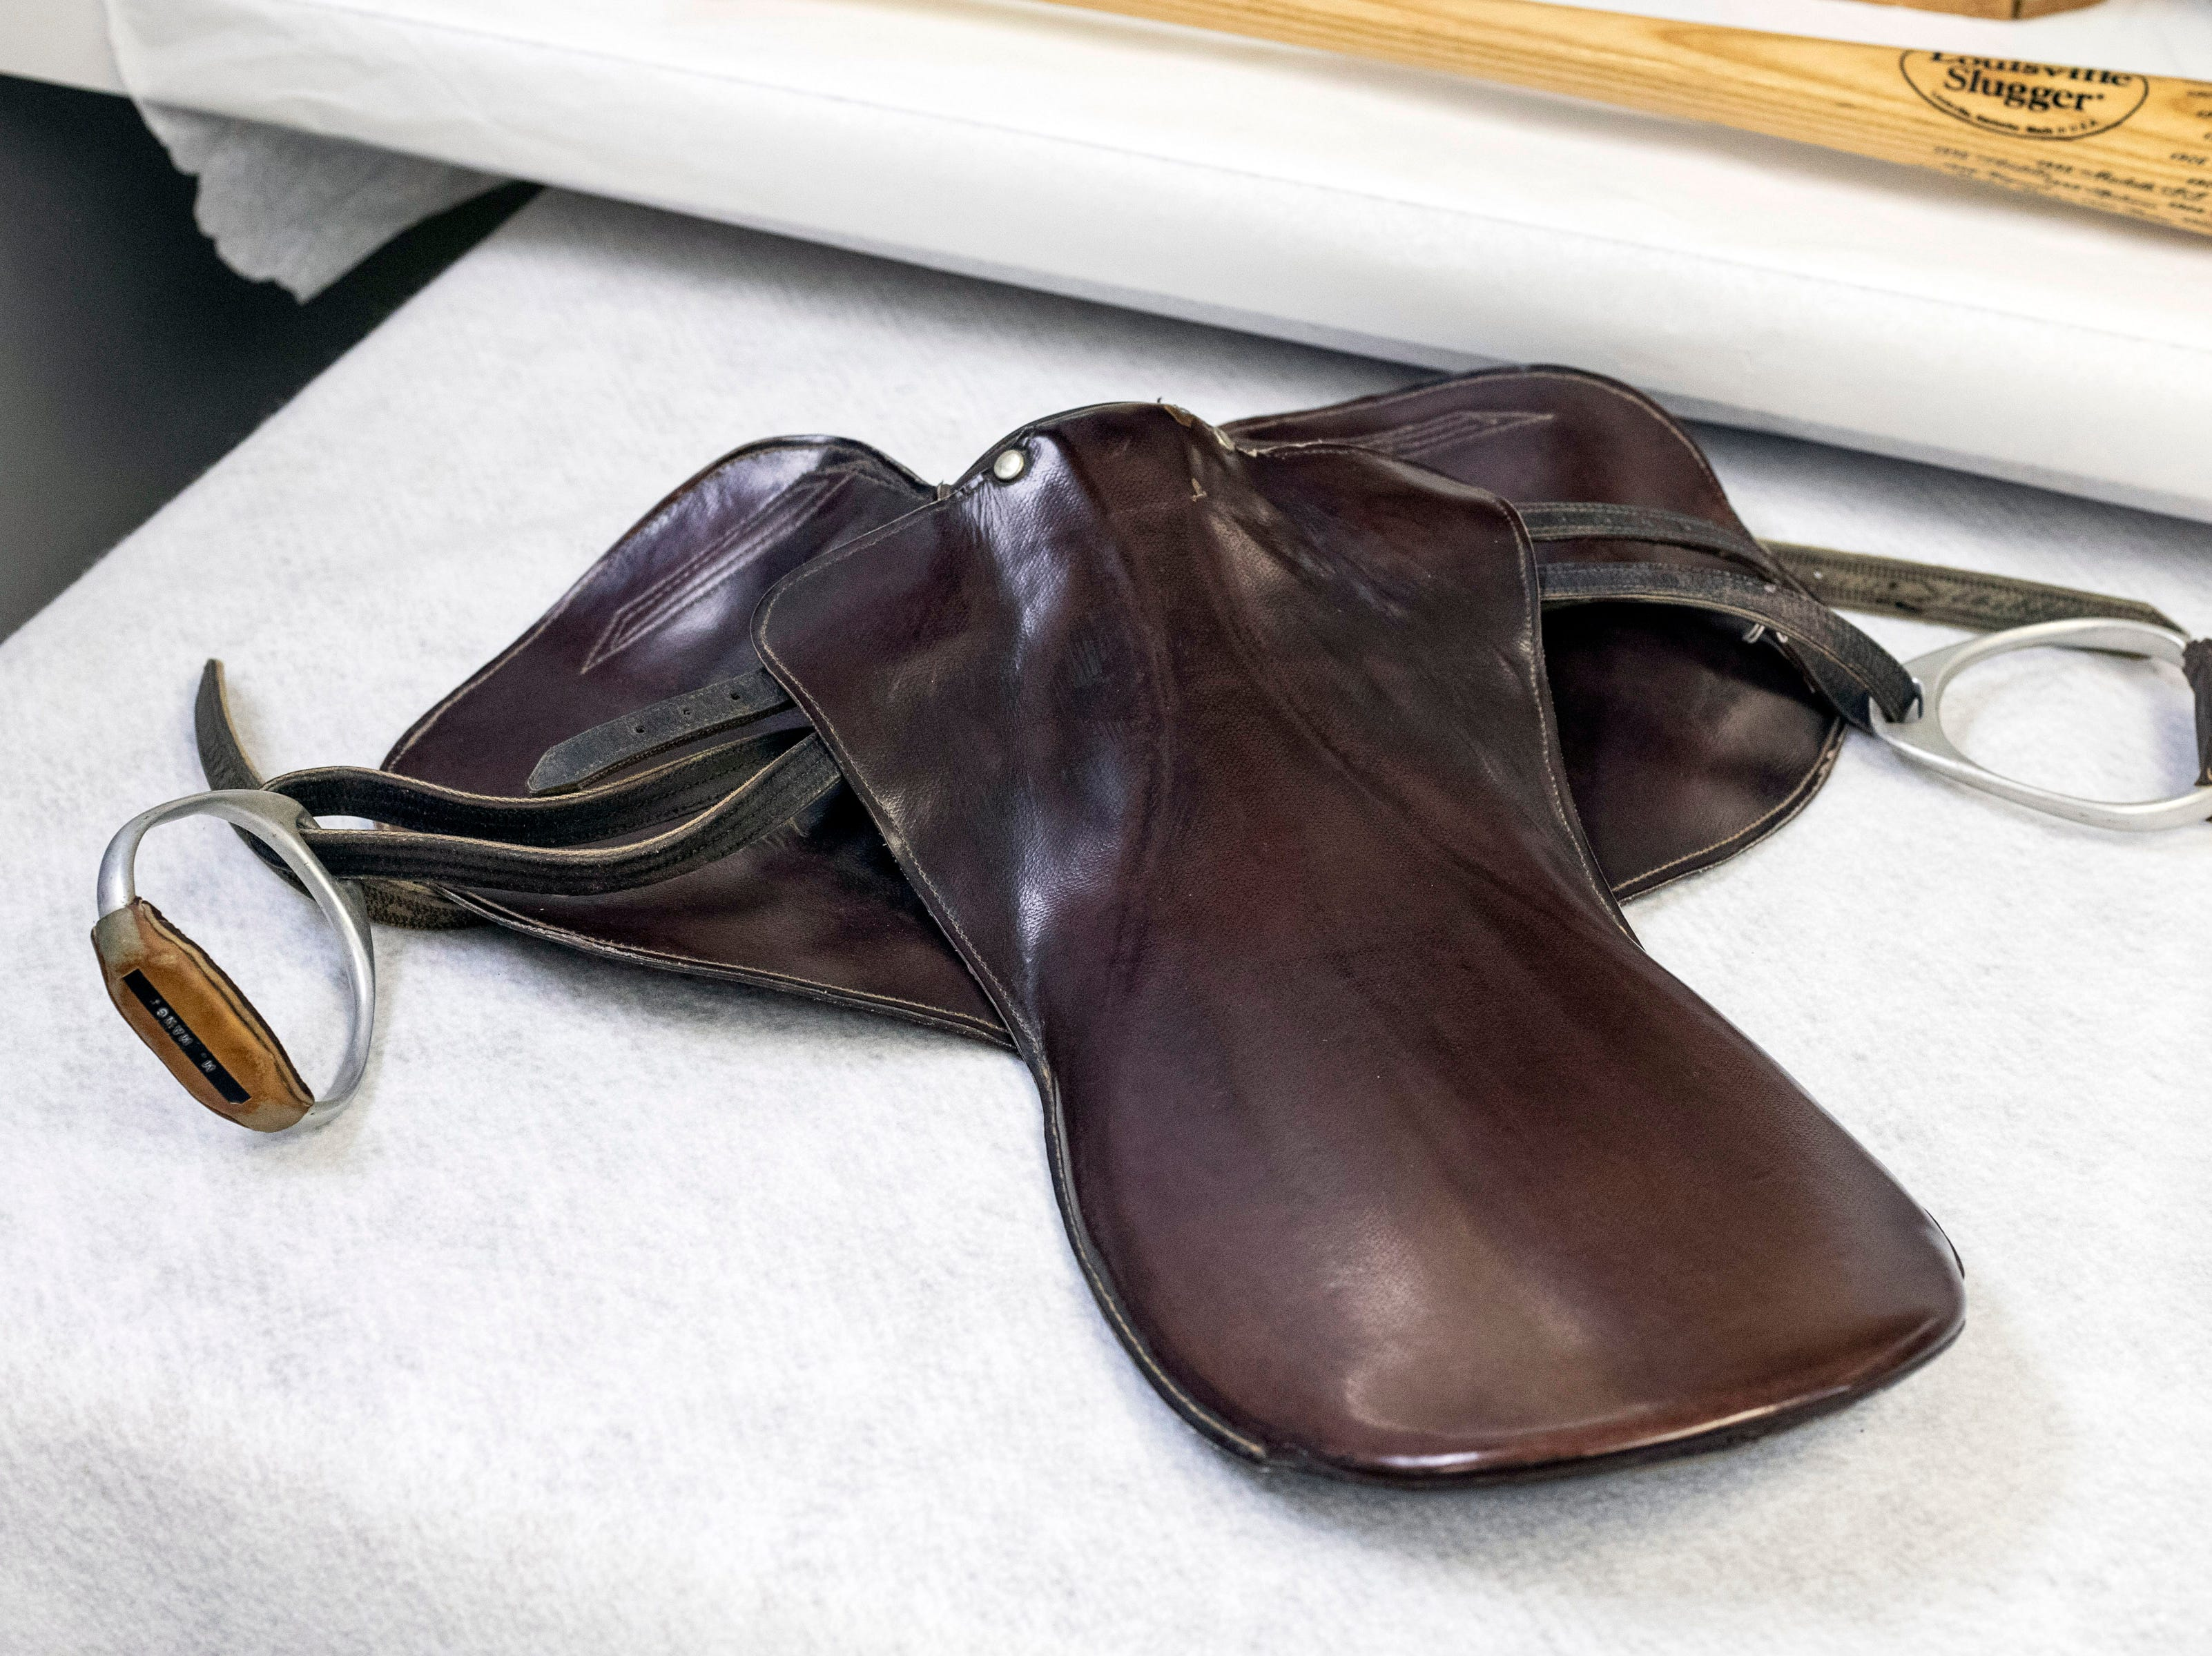 One of the many items in the Derby Museum archives is the saddle used by Mike Manganello when he rode Dust Commander to victory in the 1970 Kentucky Derby. 3/26/19